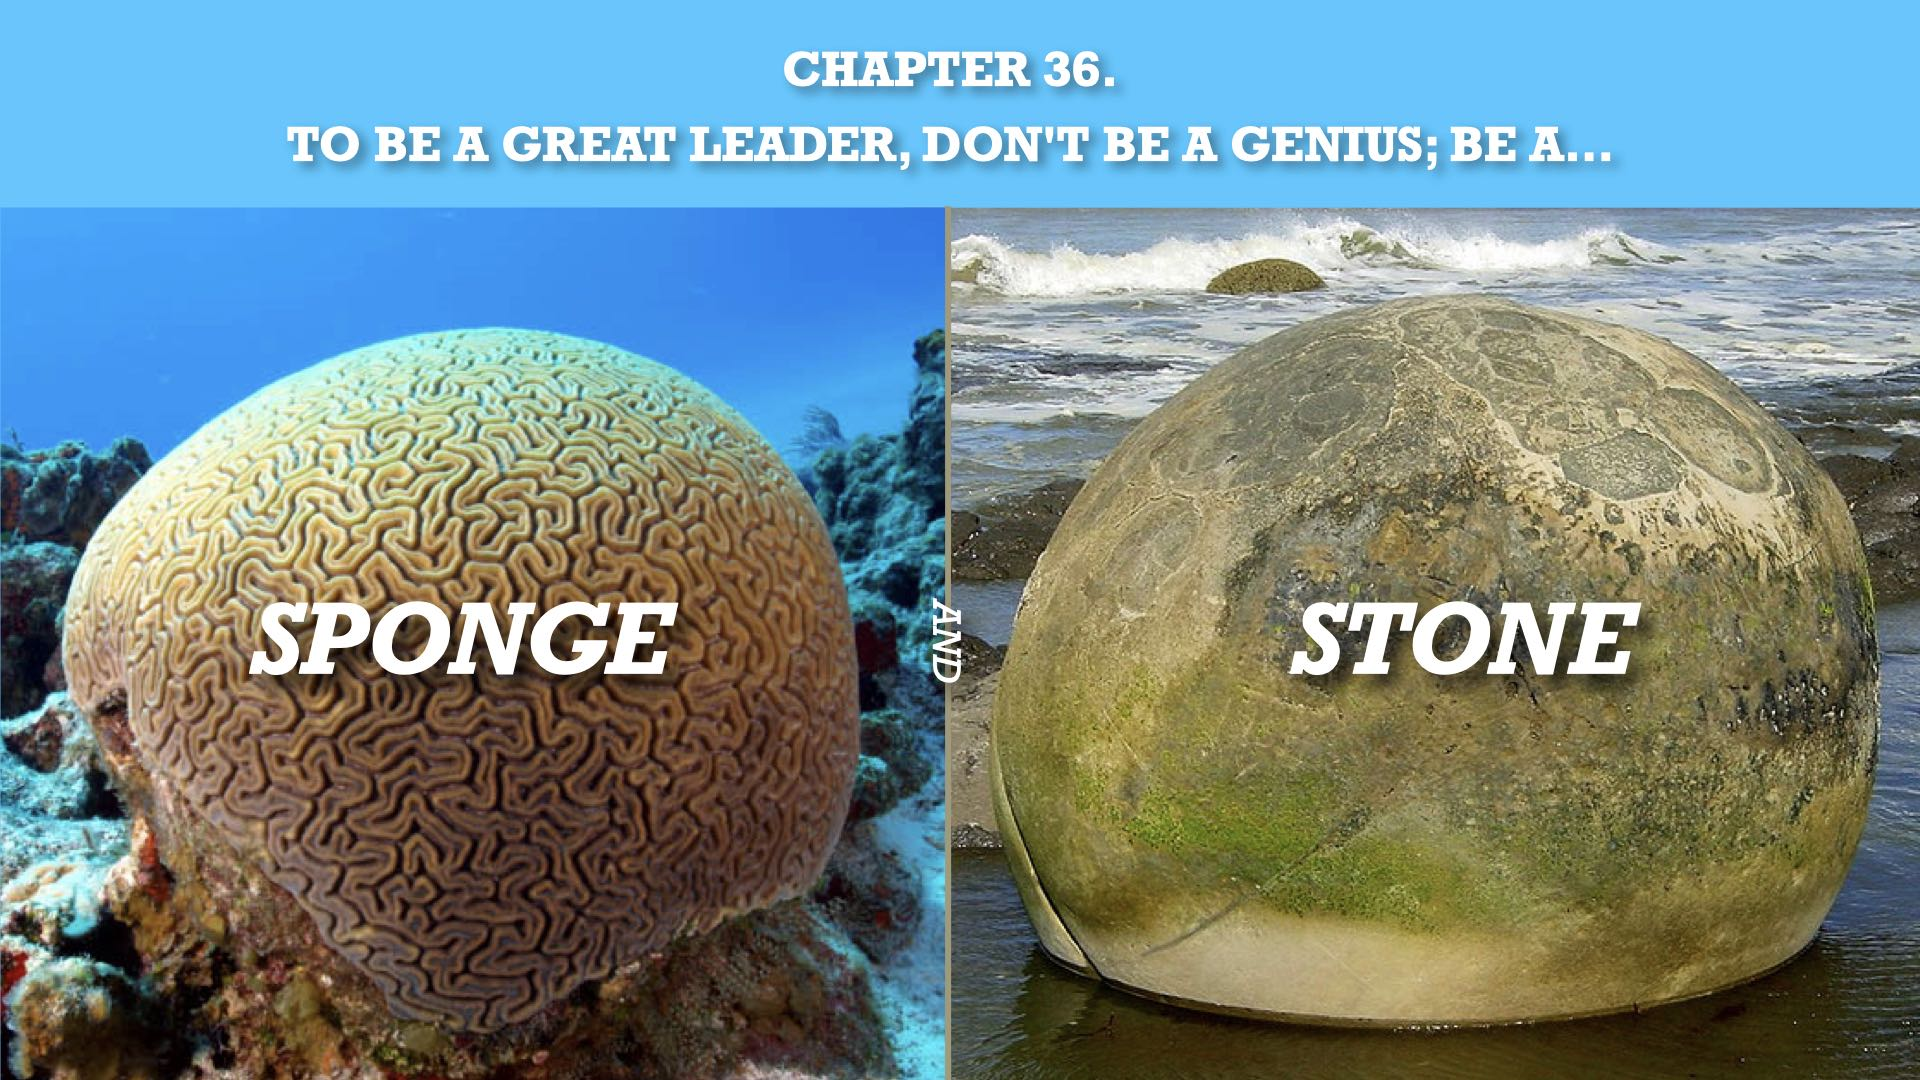 To Be a Great Leader:  Don't Be a Genius, Be a Sponge and a Stone